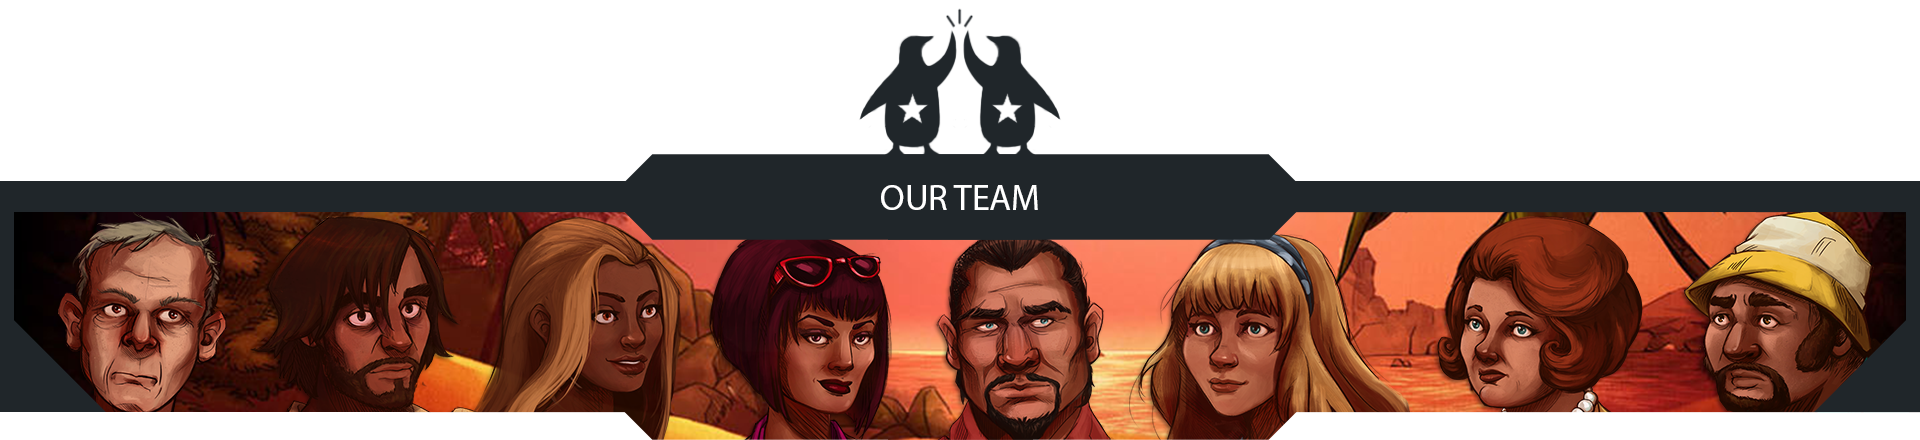 cccpwebsite_banner_ourteam